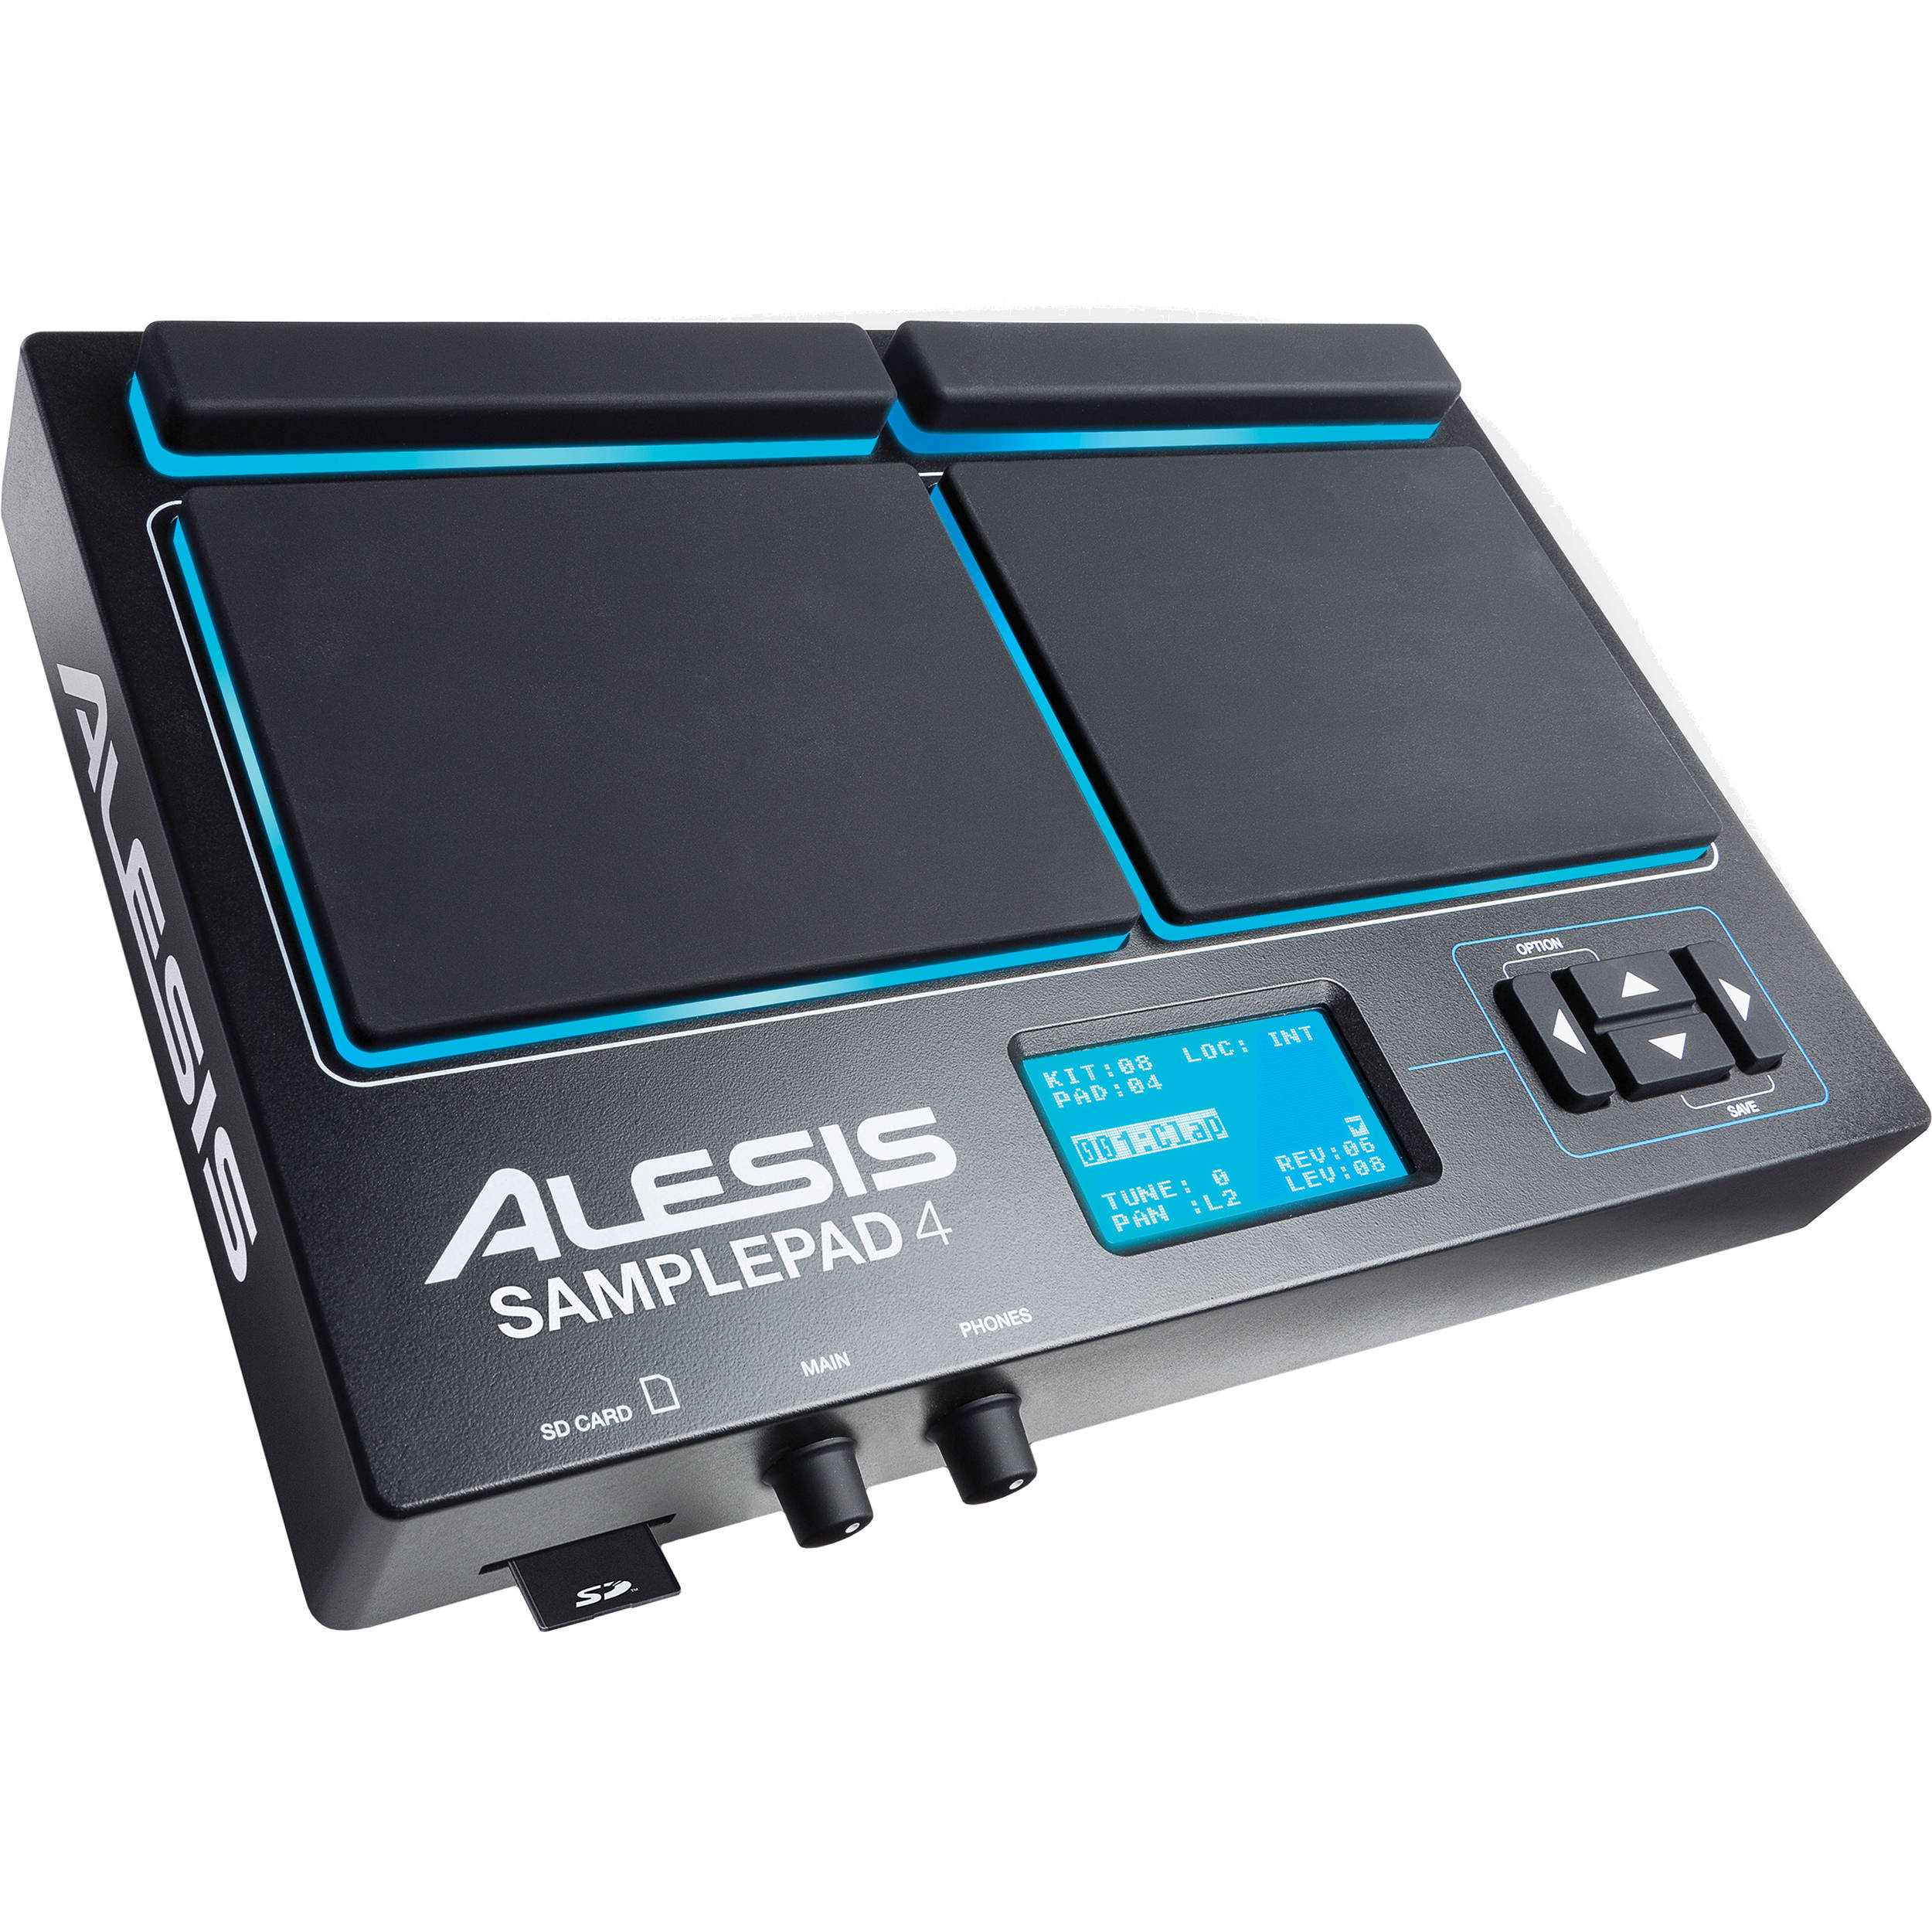 Alesis SamplePad 4, Four-Pad Percussion and Sample-Triggering Instrument